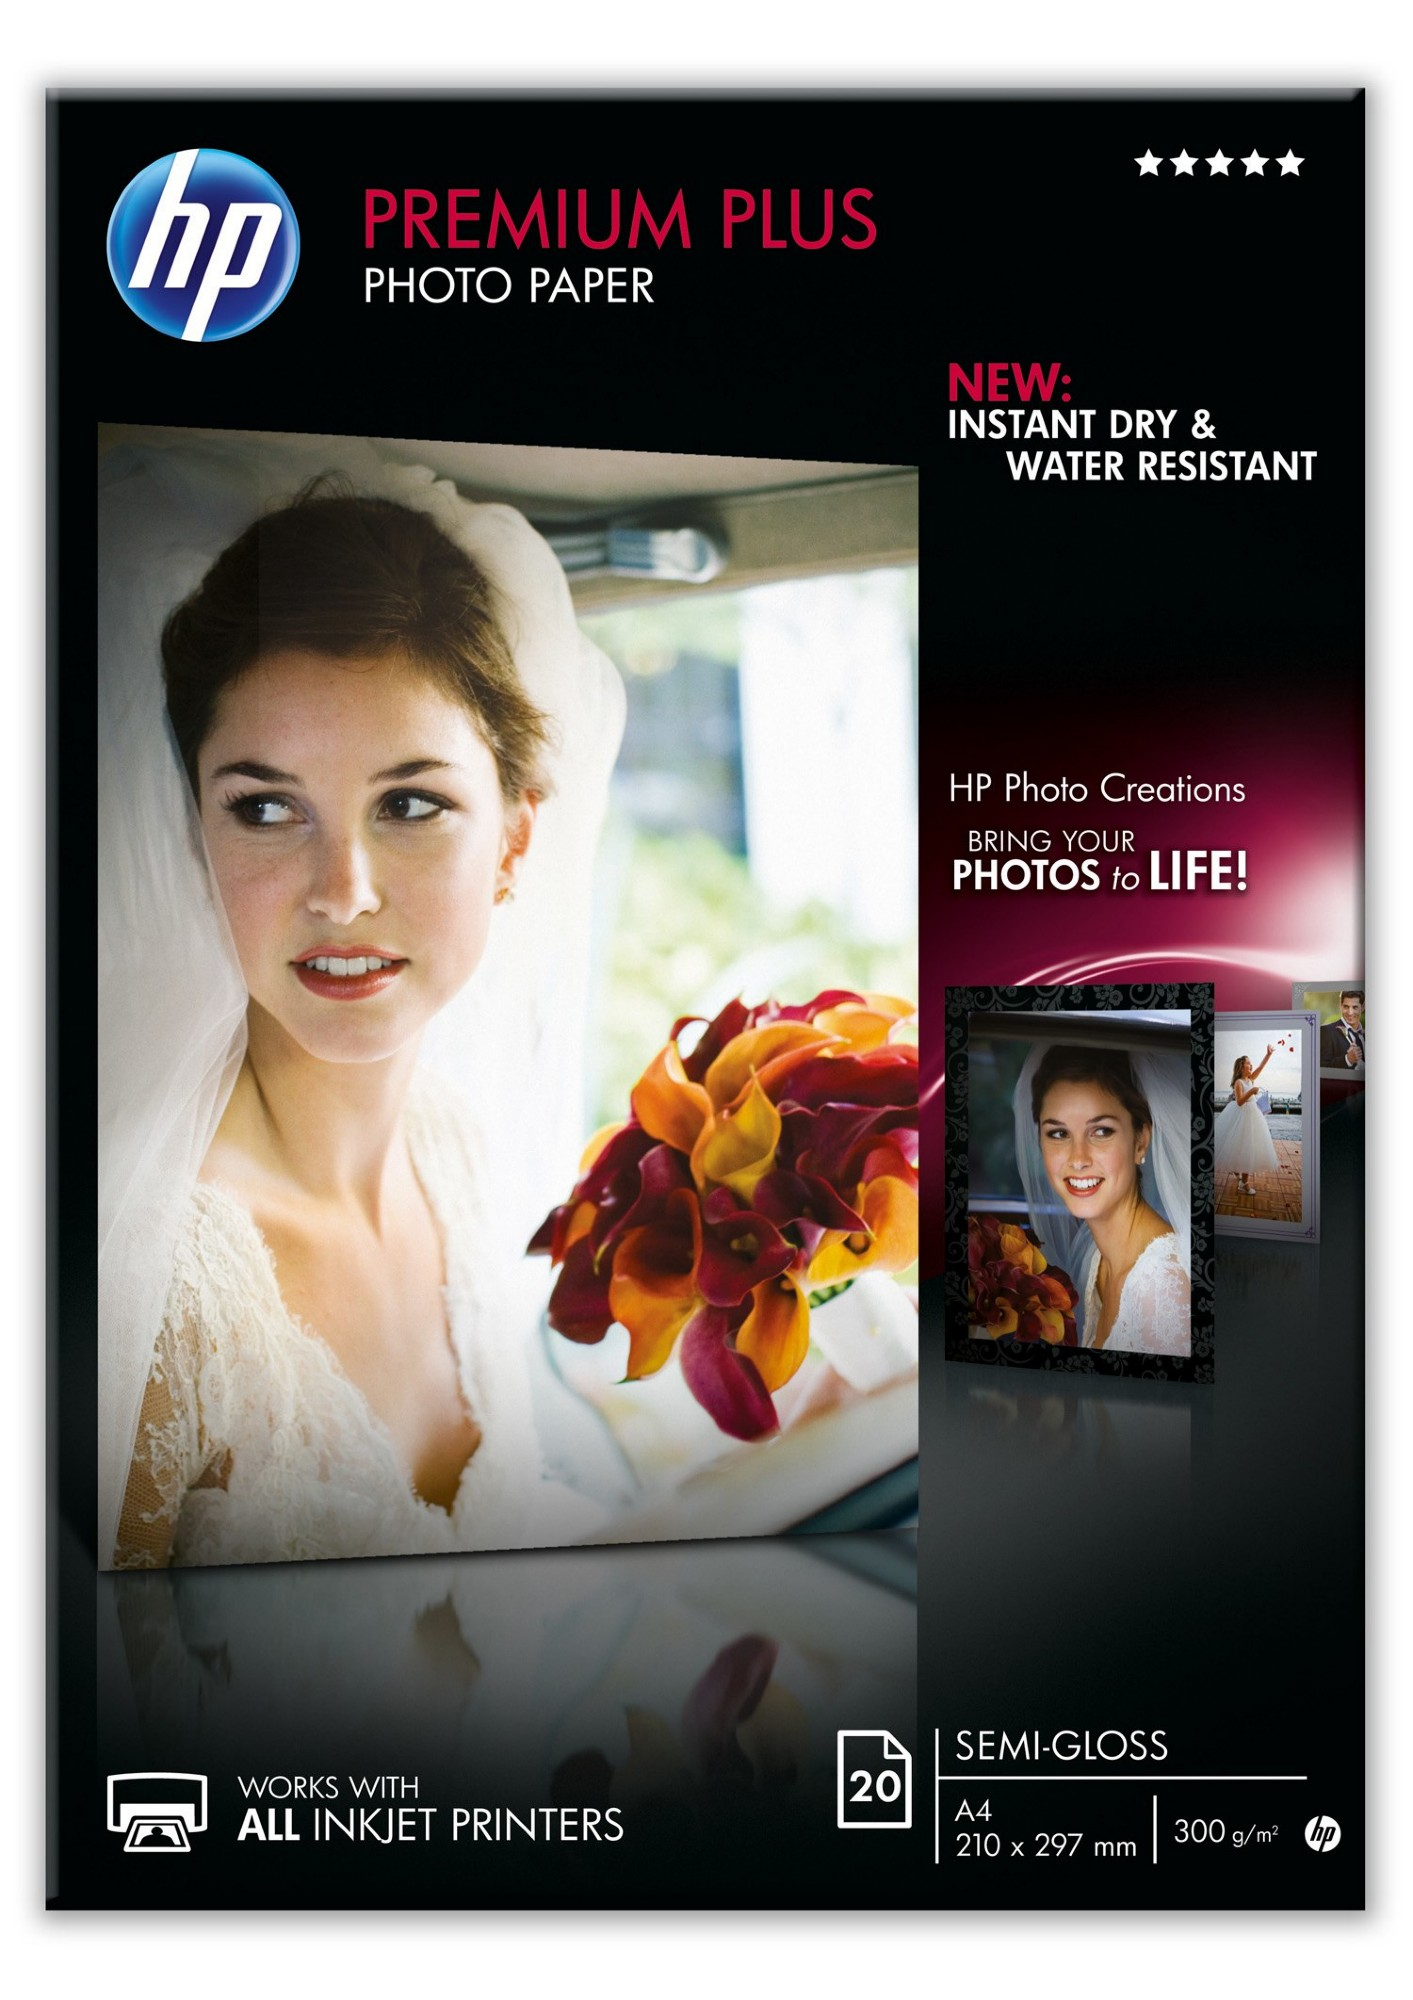 HP Premium Plus Semi-gloss Photo Paper pak fotopapier A3